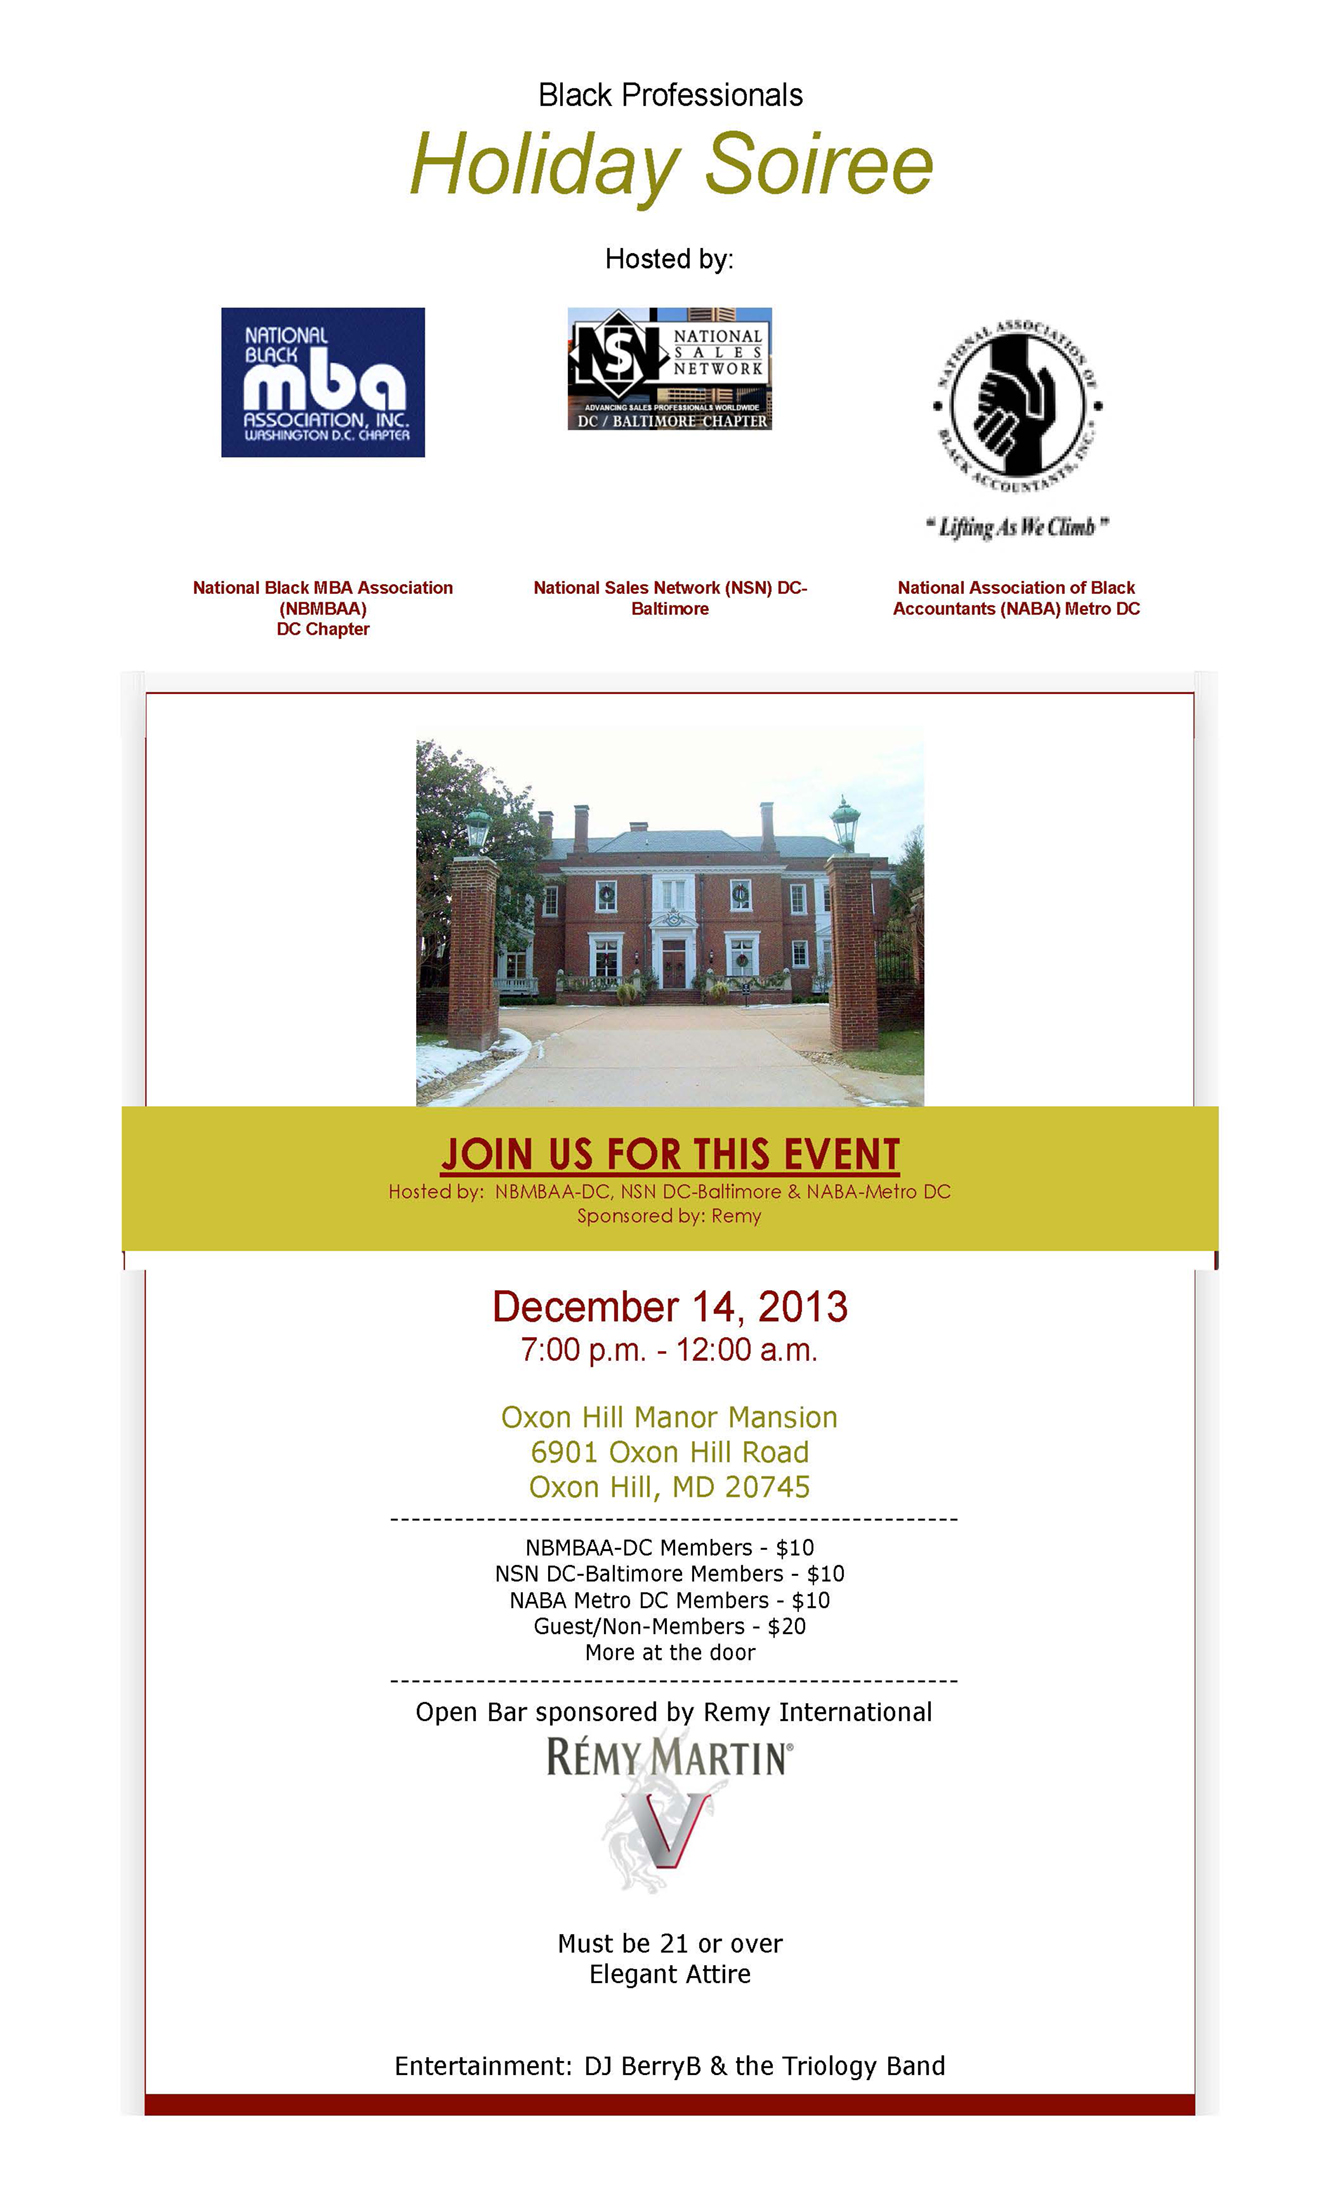 Select here for details: NBMBAA-DC Holiday Mixer at the Oxon Hill Manor